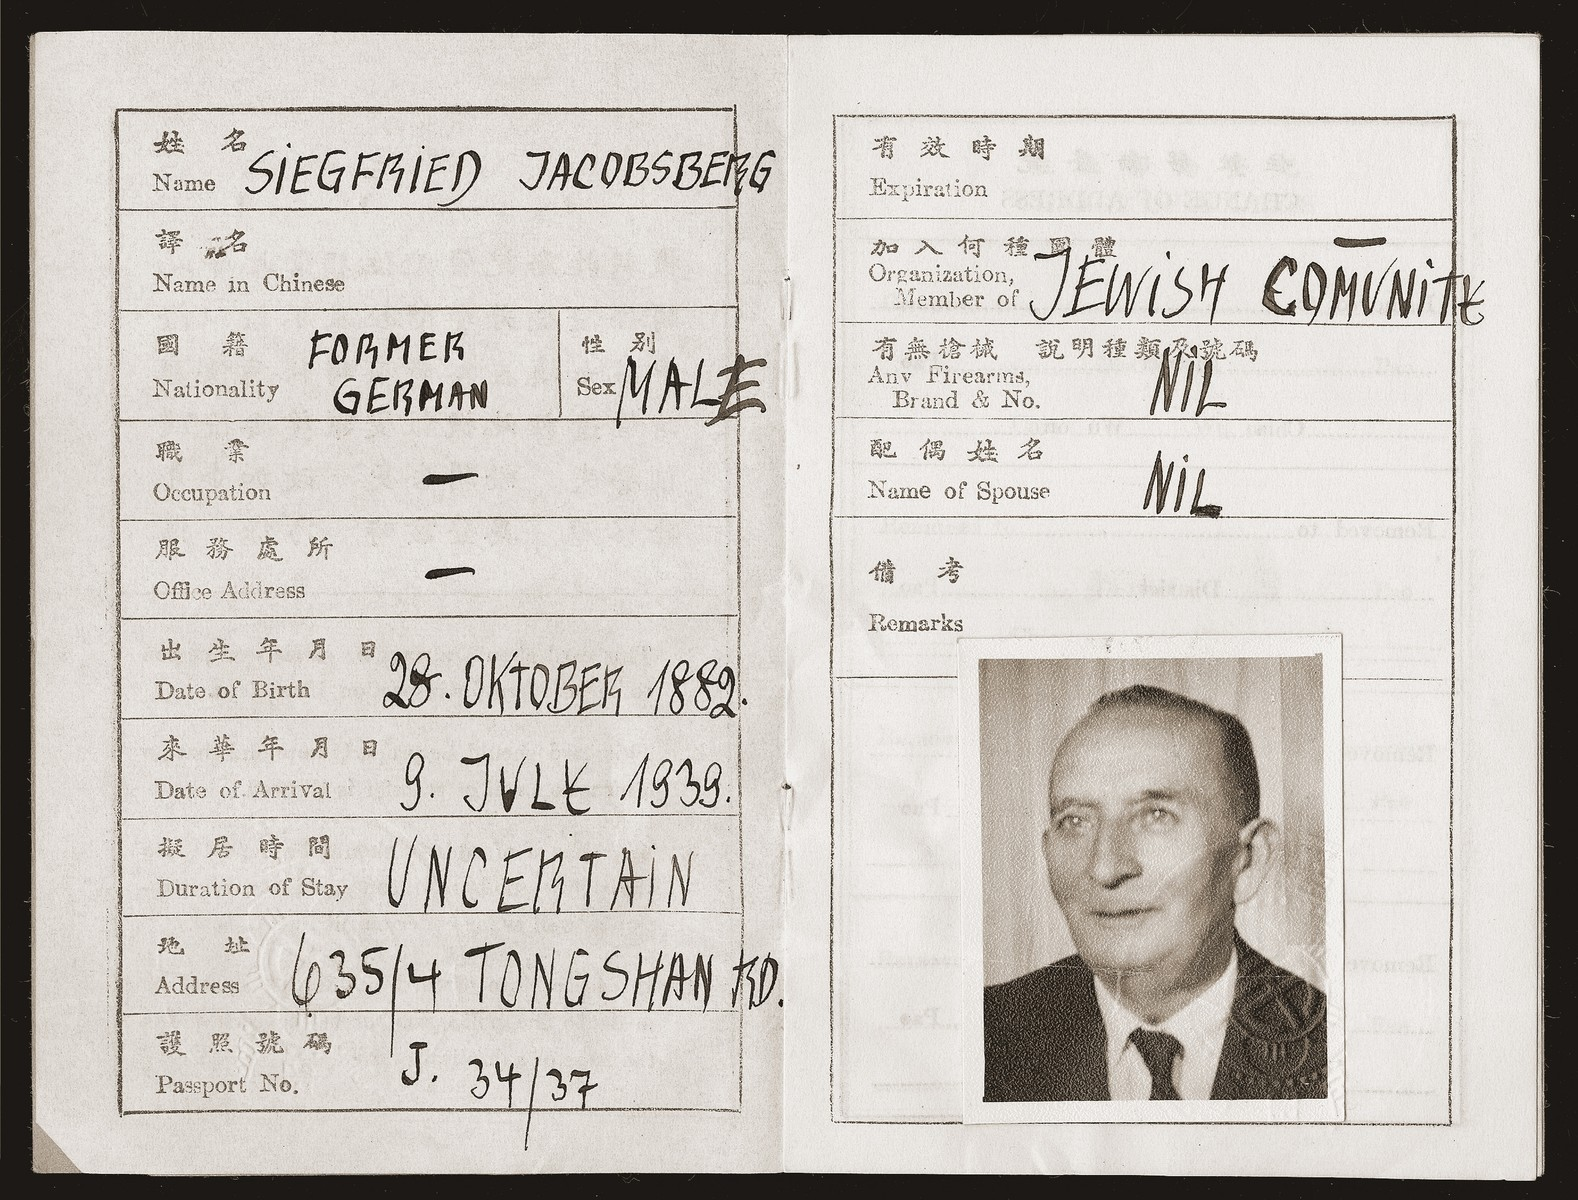 An identification document issued to Siegfried Jacobsberg in Shanghai.